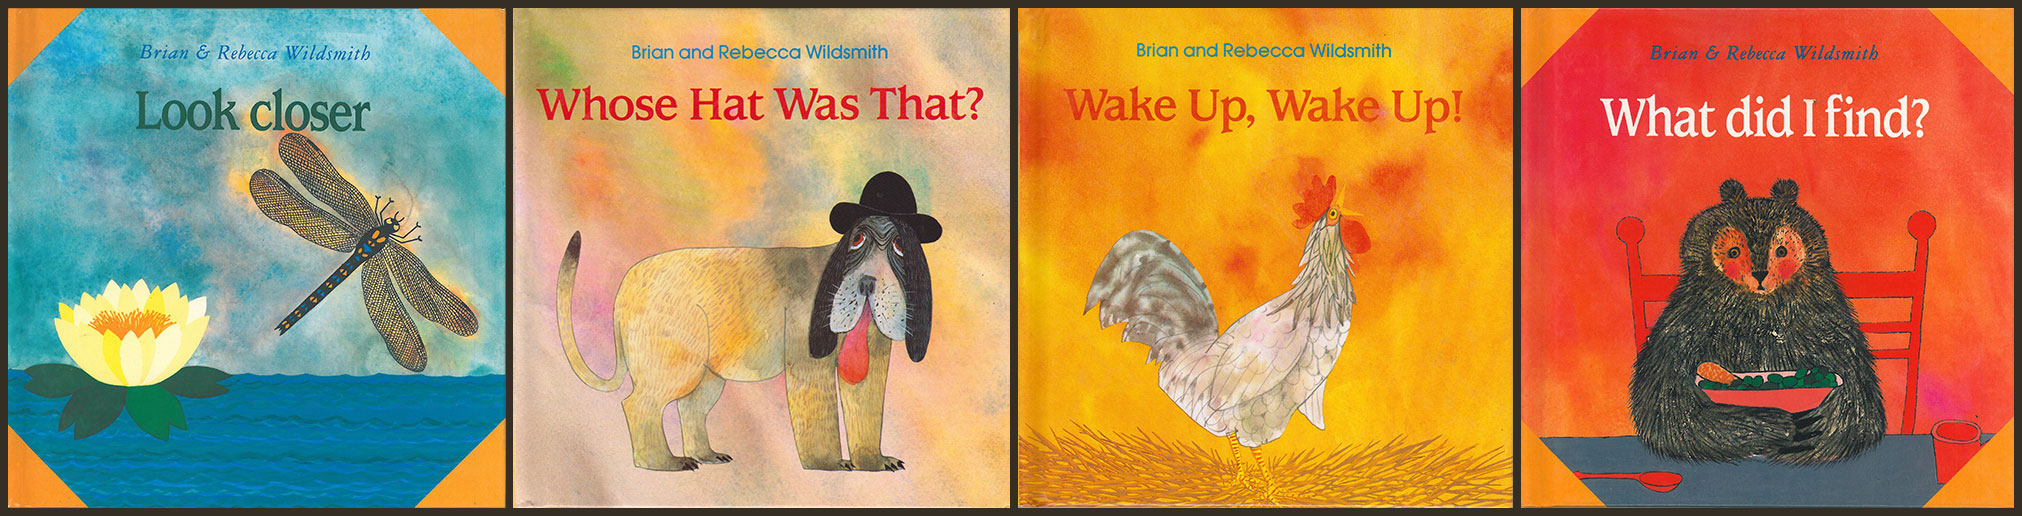 look-closer-whose-hat-was-that-wake-up-wake-up-what-did-i-find-brian-rebecca-wildsmith.jpg